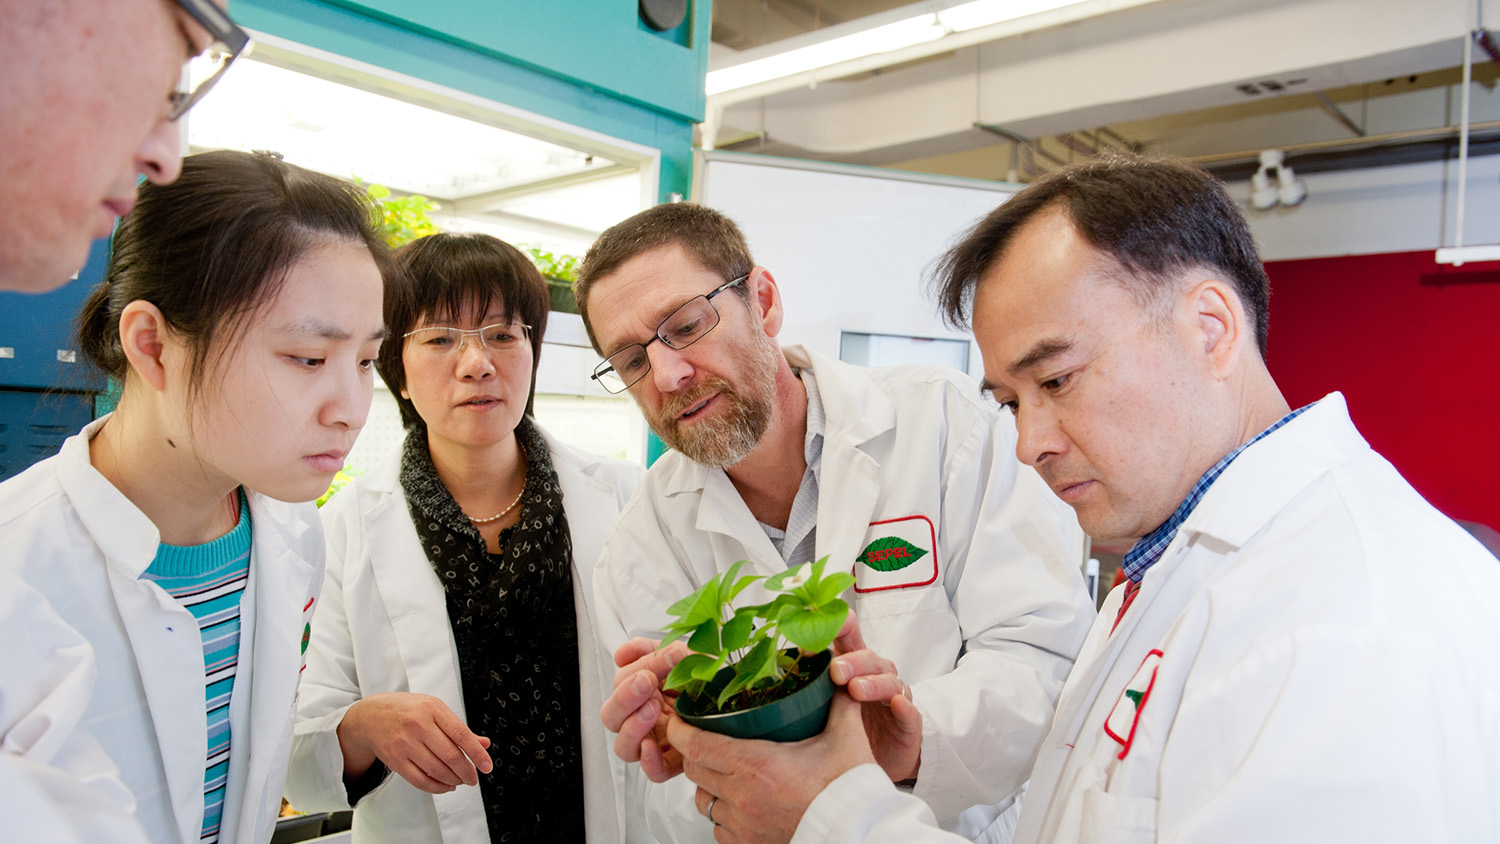 Five NCState College of Agriculture and Life Sciences researchers examine a small dogwood plant in a pot in a laboratory setting.